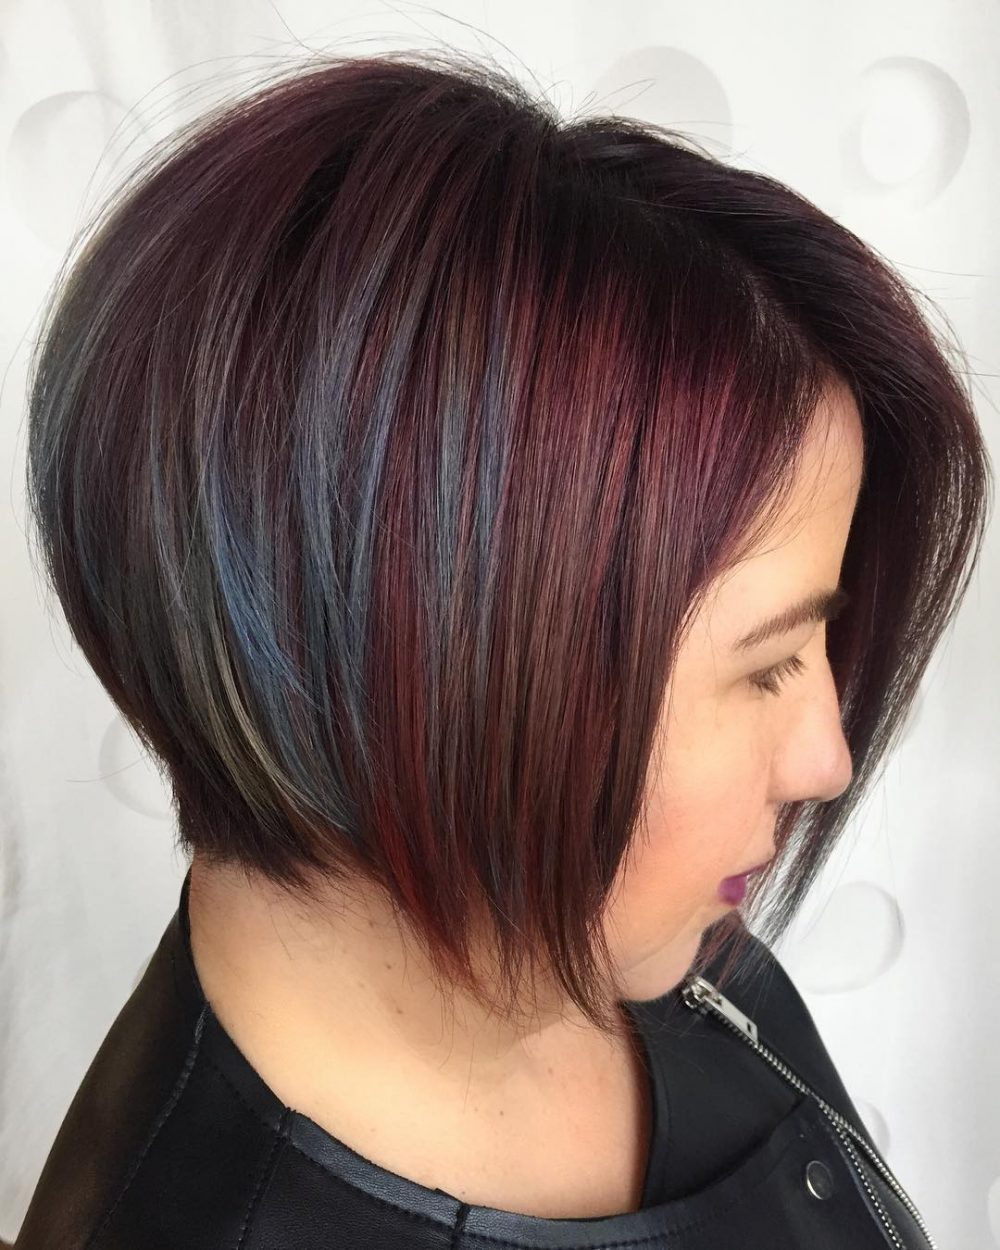 Short great bob hairstyle for coarse hair images